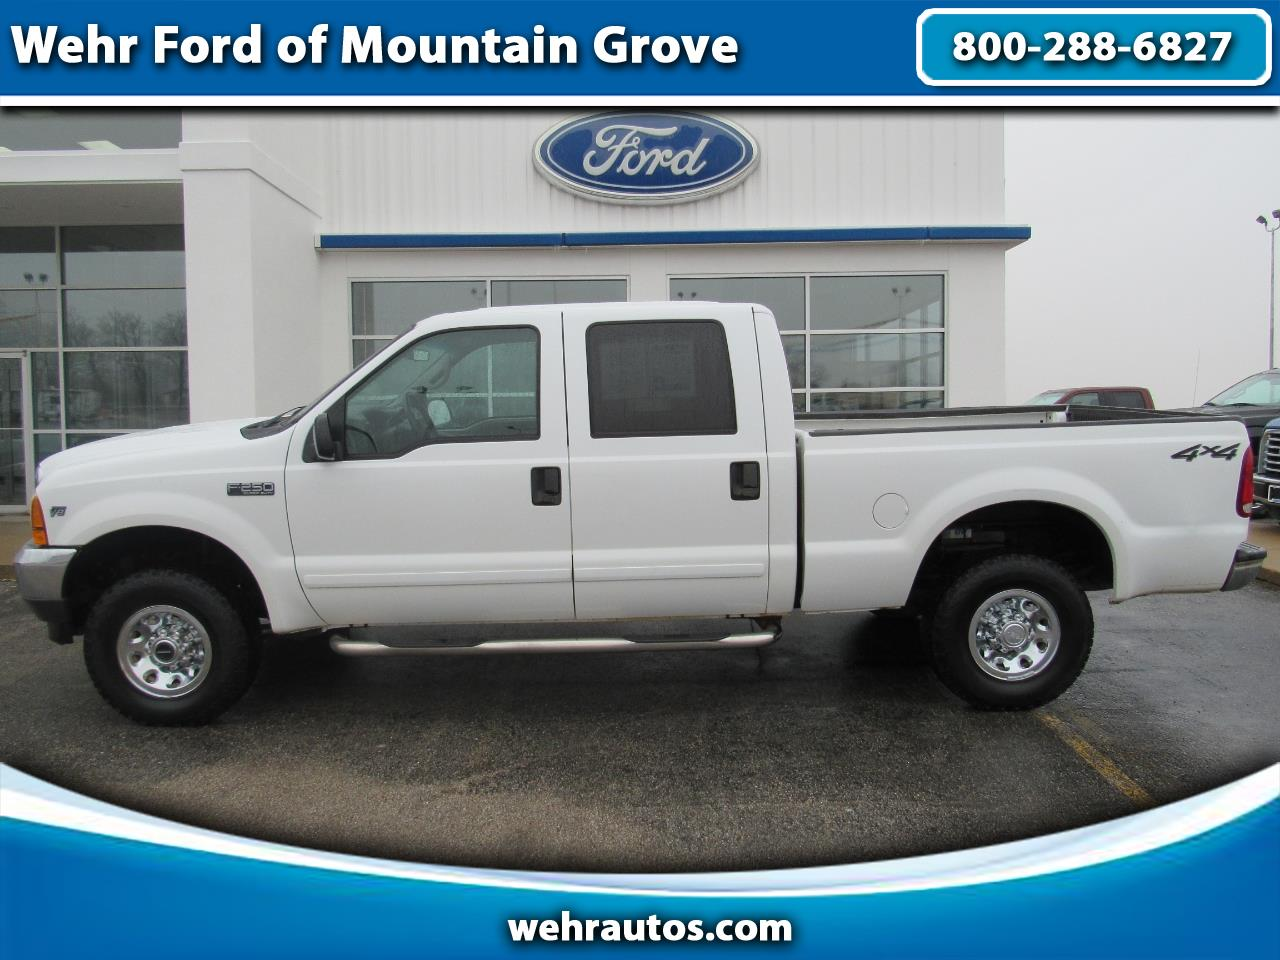 2001 Ford Super Duty F-250 Crew Cab XLT 4WD